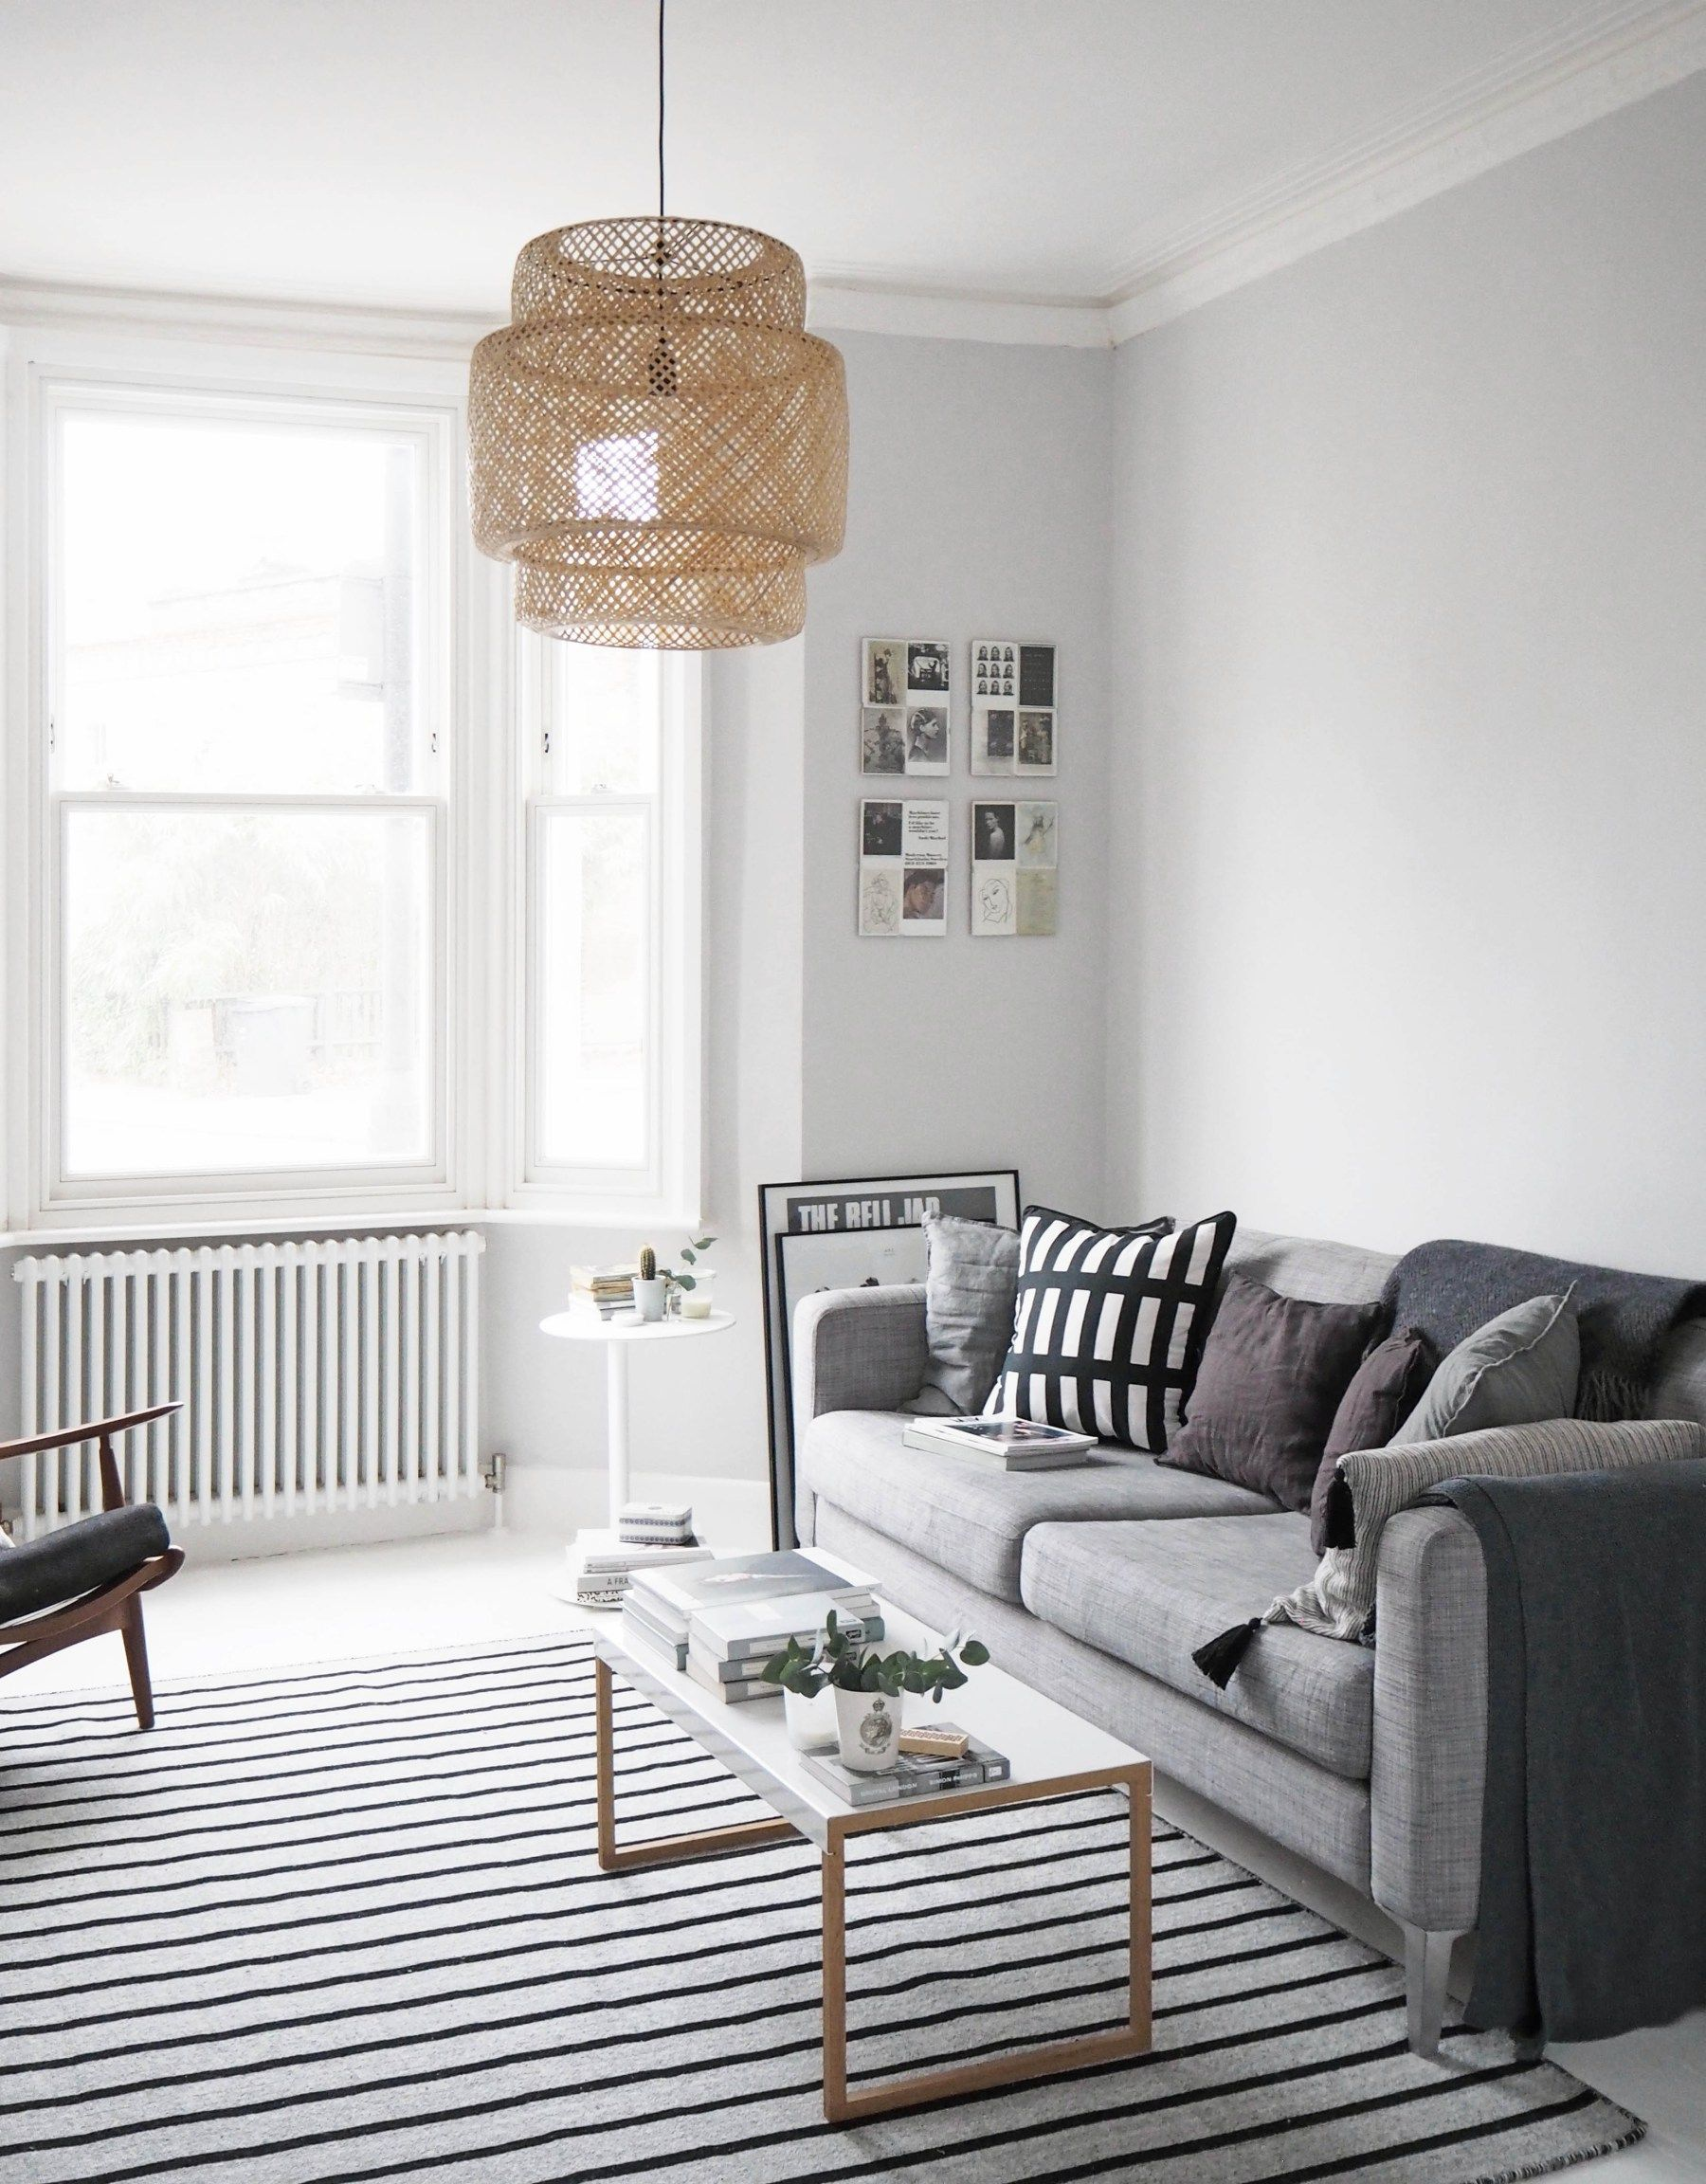 My Scandistyle living room makeover painted white